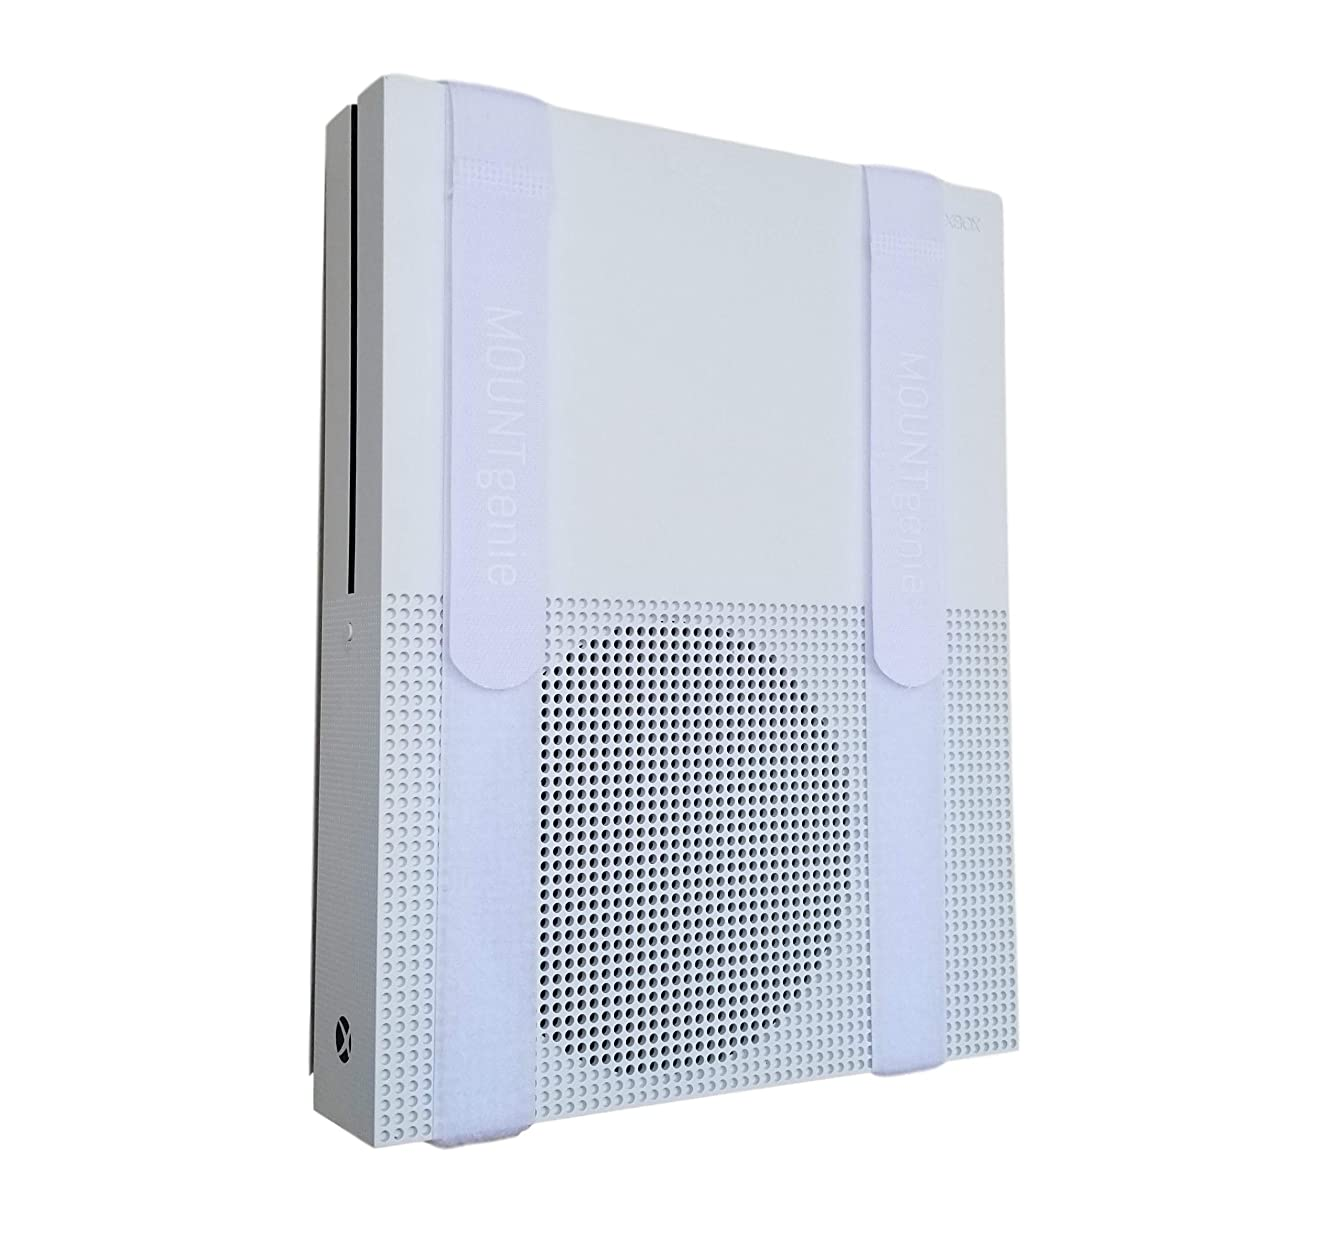 The All-in Wonder Mount by Mount Genie: The Easiest Wall Mount for All Components Routers Modems Xbox Playstation DVRs | One Size Fits All | Designed for Home and Business (White)